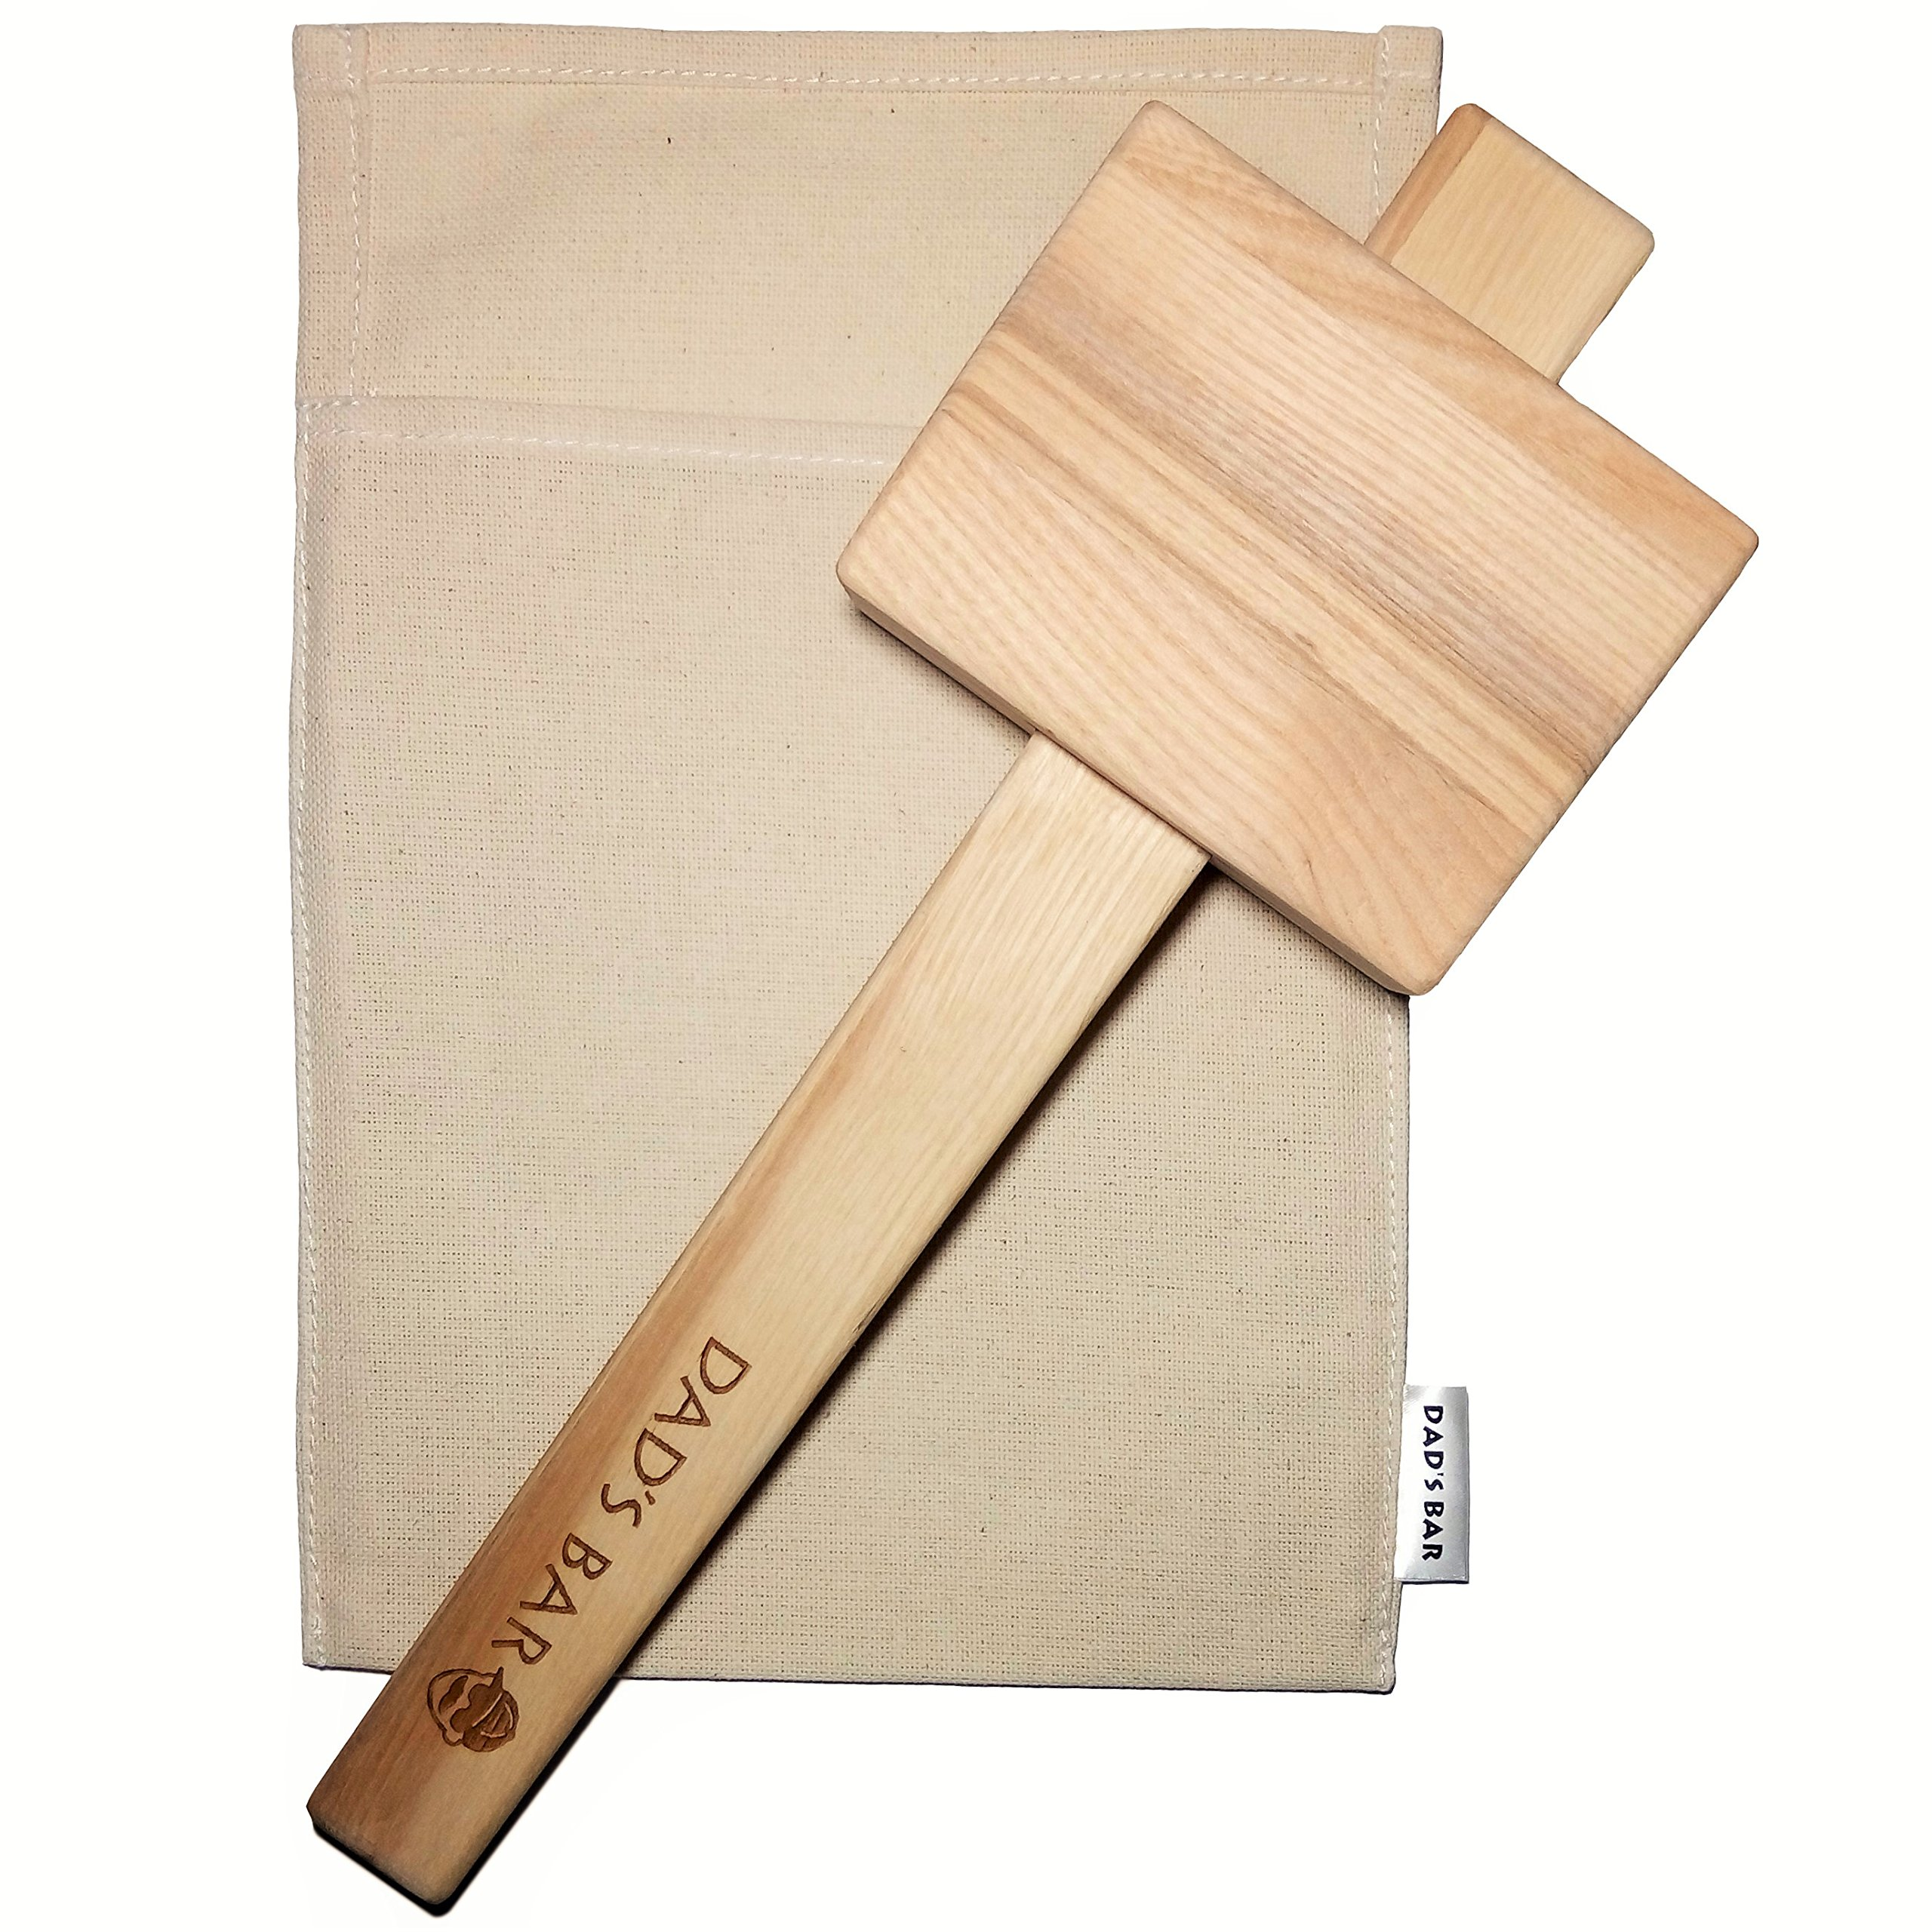 Lewis Ice Bag and Mallet effective and stylish manual Ice Crusher by Dad's Bar Large Mallet 14 Inches